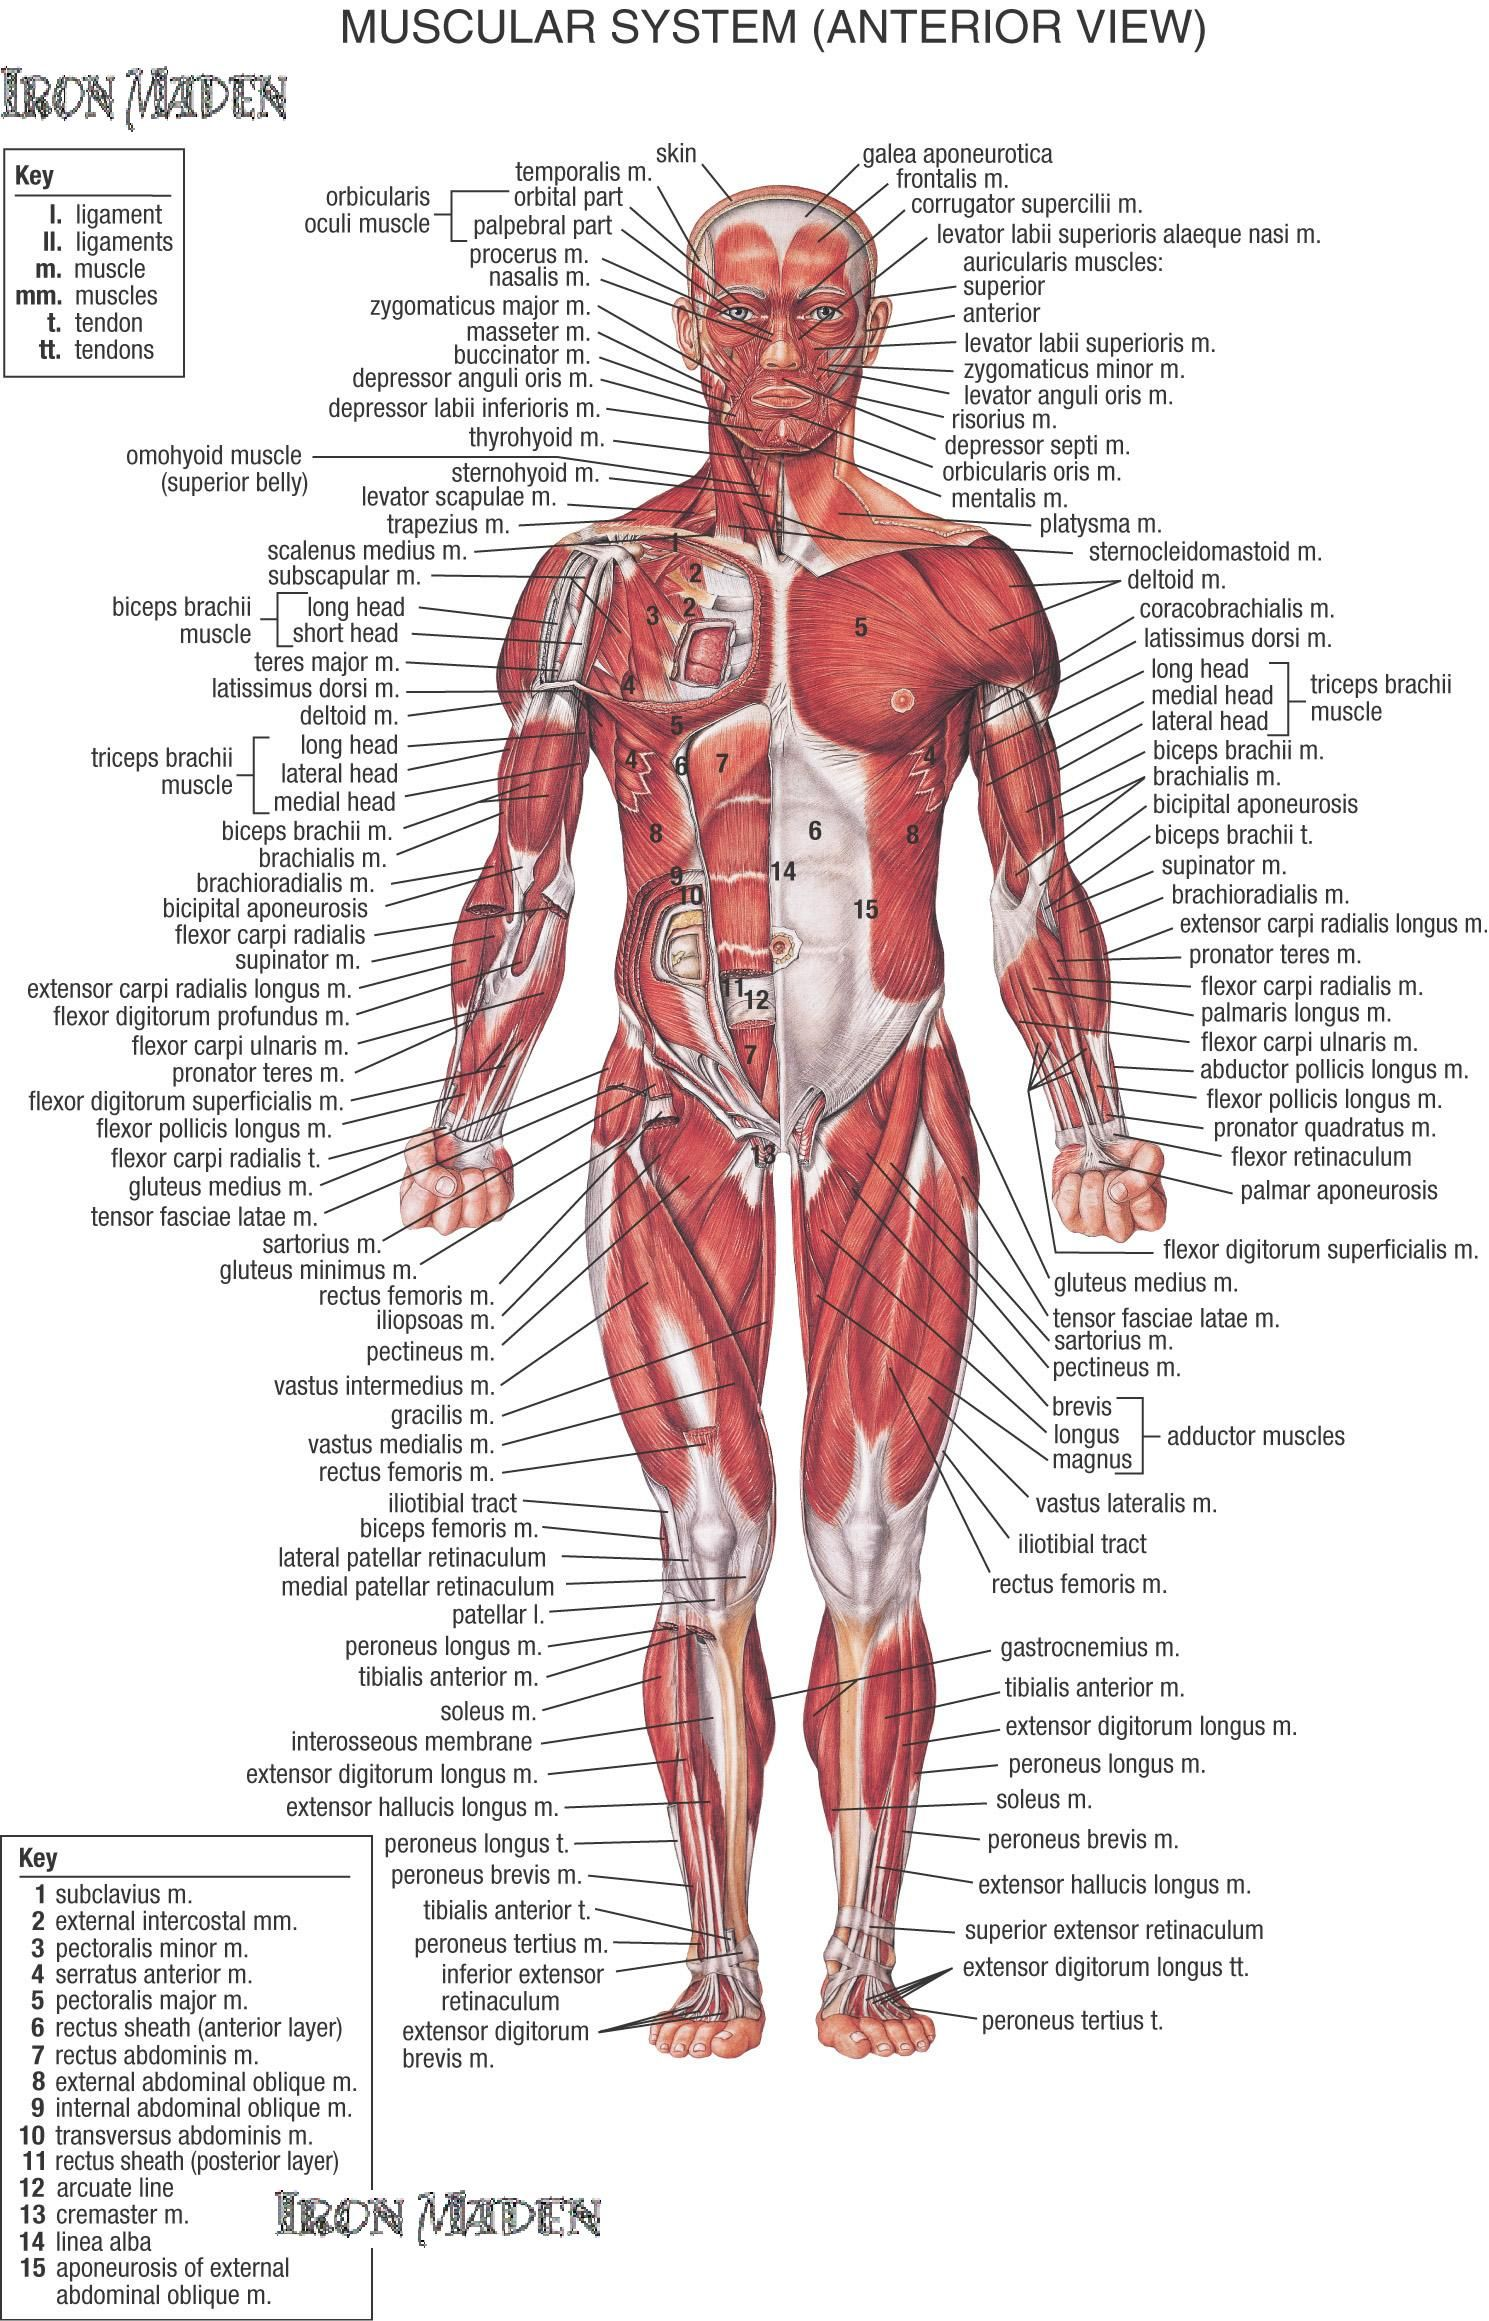 Muscles, muscles, and more muscles | Massage | Pinterest | Anatomía ...